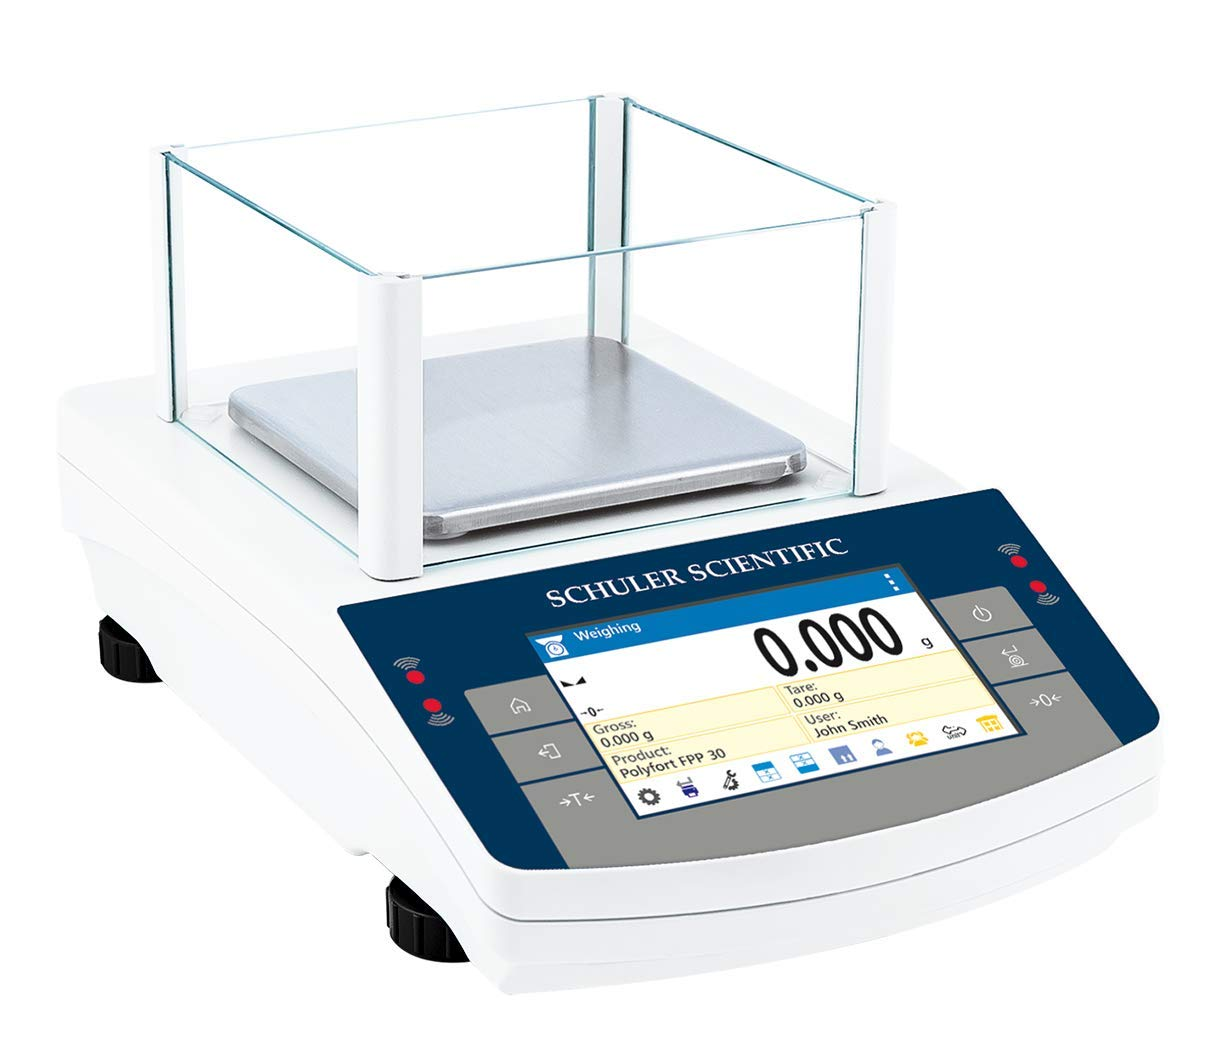 Image of Analytical Balances Schuler Scientific SPS-363.TD TD Series Precision Balance with 1mg Readability and 360G Capacity, 13.98' Height, 8.11' Wide, 13.11' Length